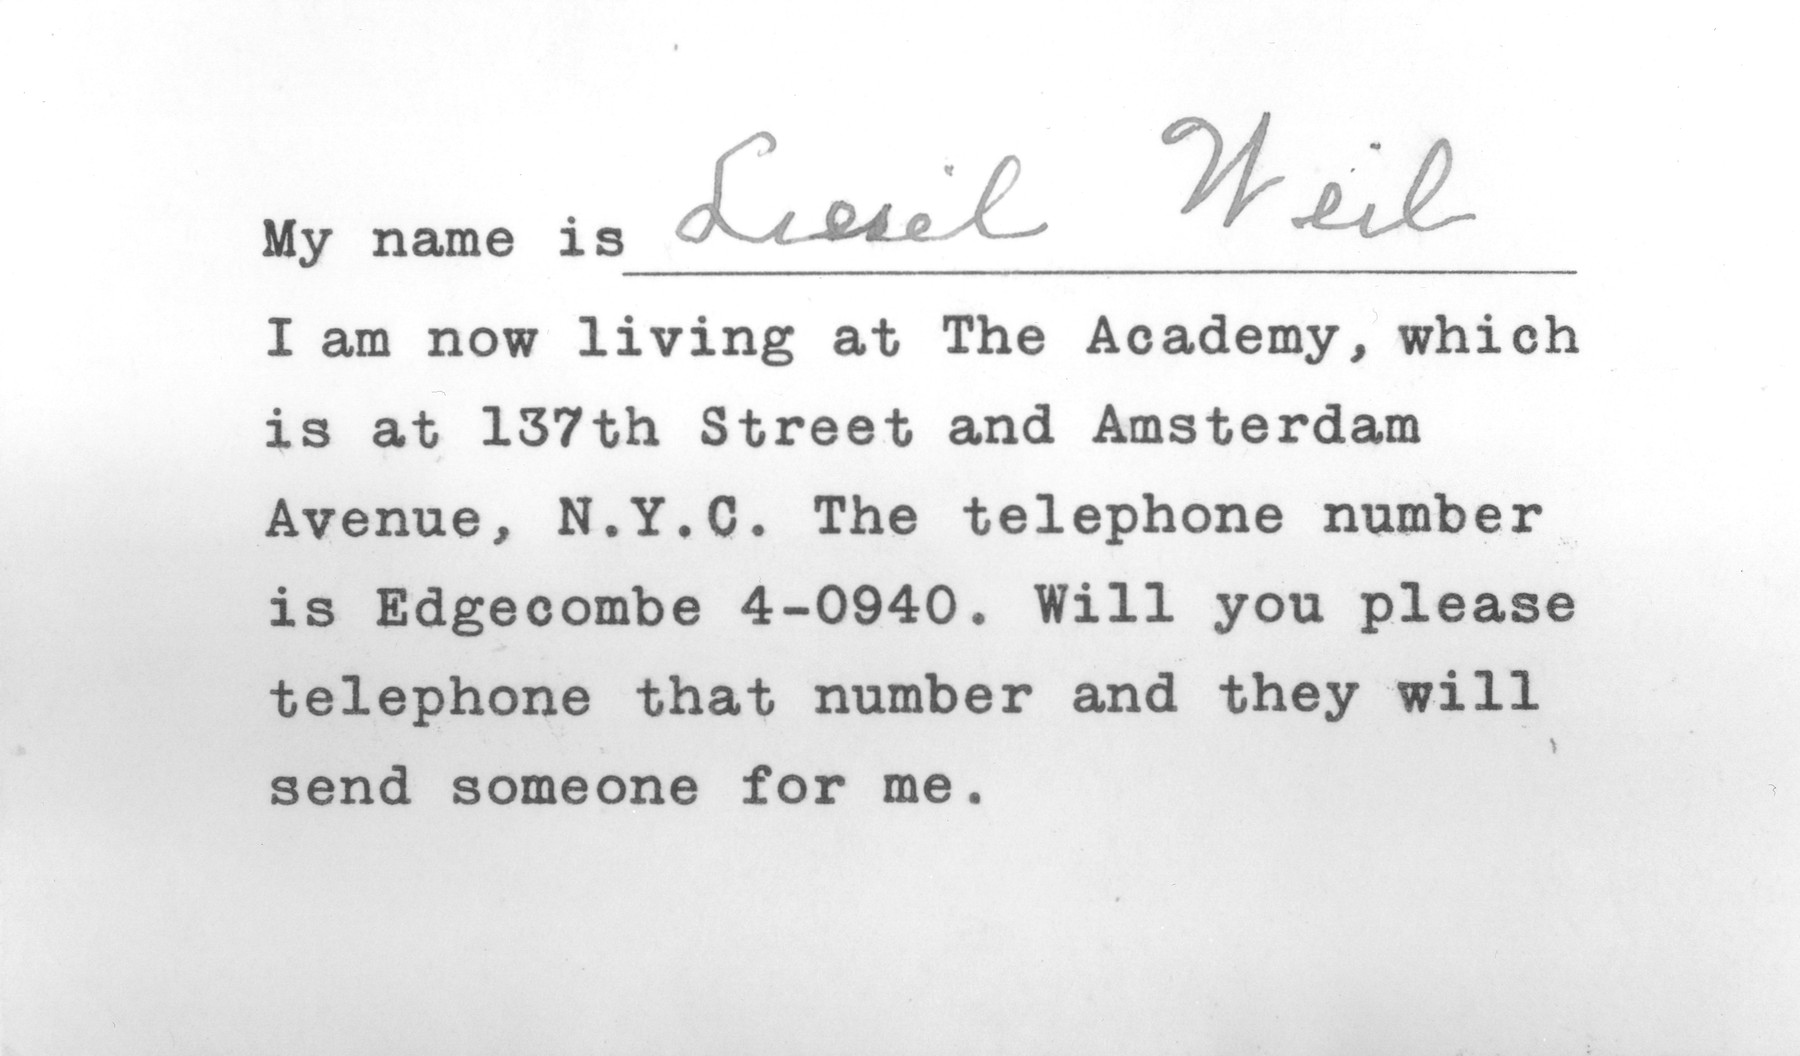 Identification tag issued to Liesel Weil upon her arrival in New York with her address and phone number in case she got lost.